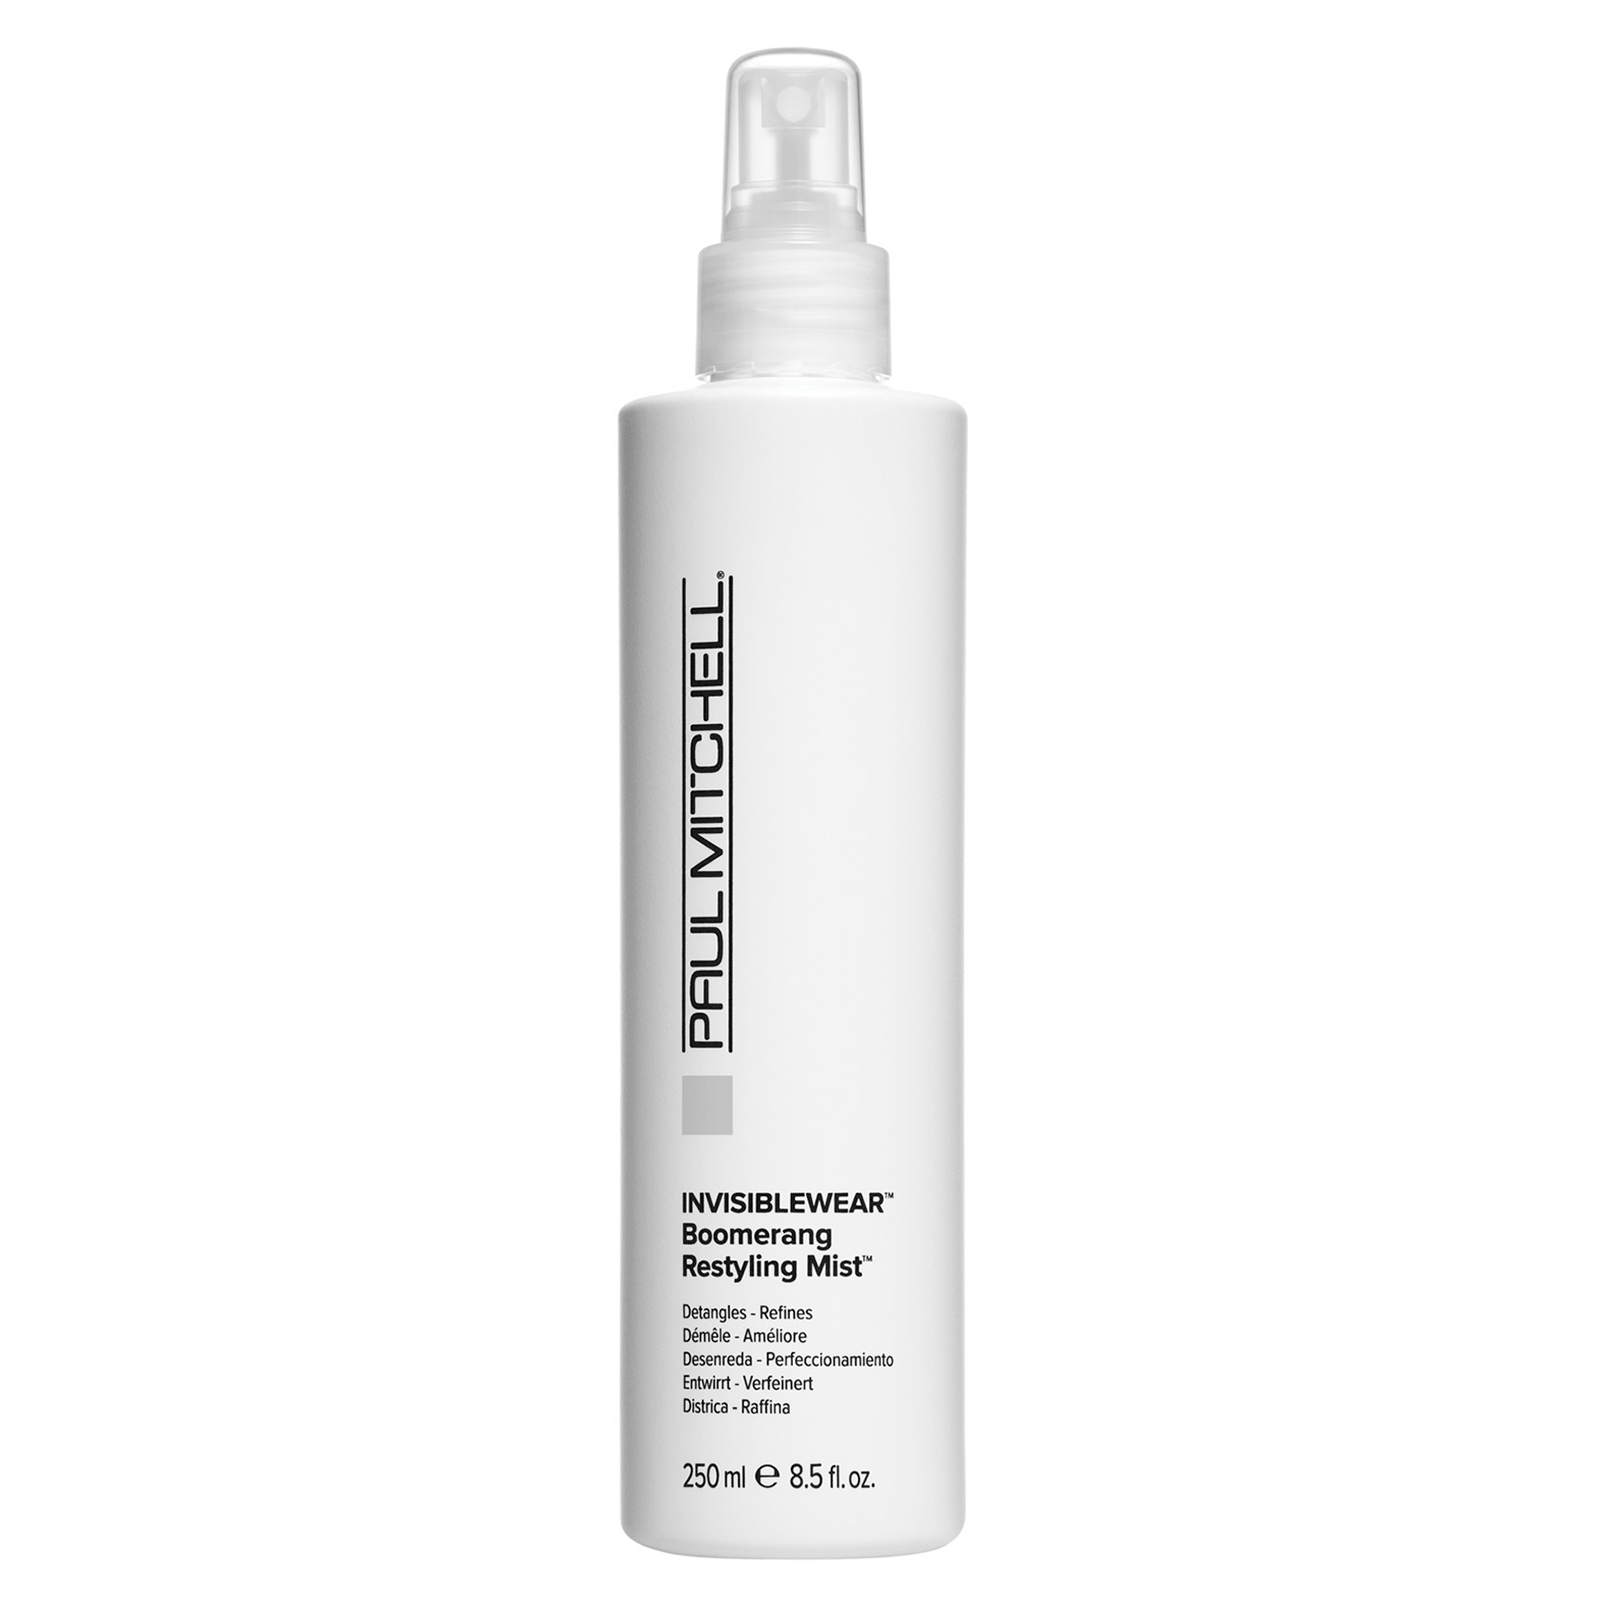 Invisiblewear - Boomerang Restyling Mist